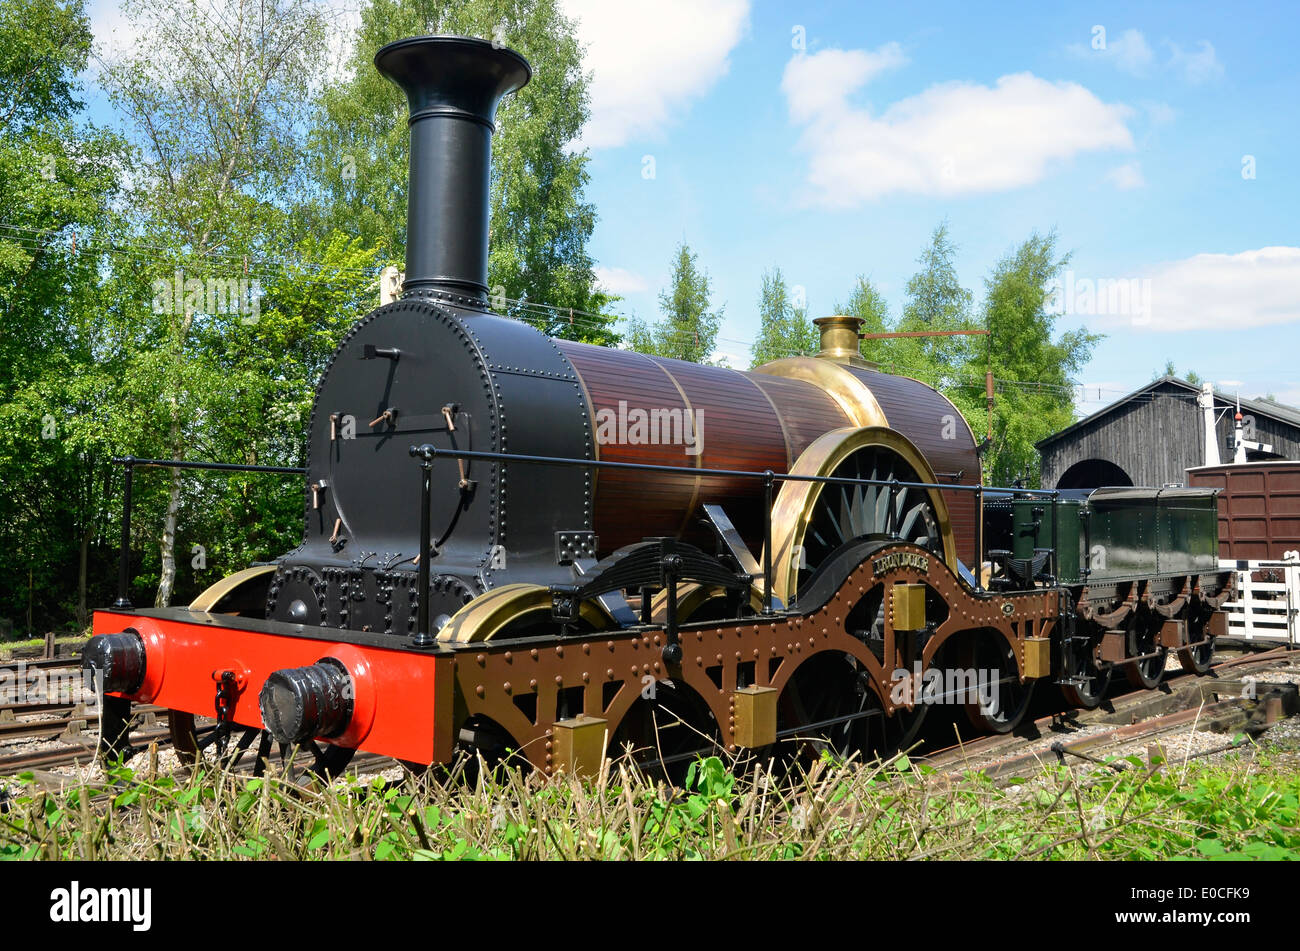 Didcot Railway Centre, home of the Great Western Society. Broad gauge engine 'Iron Duke' (replica) designed by Sir Daniel Gooch. - Stock Image